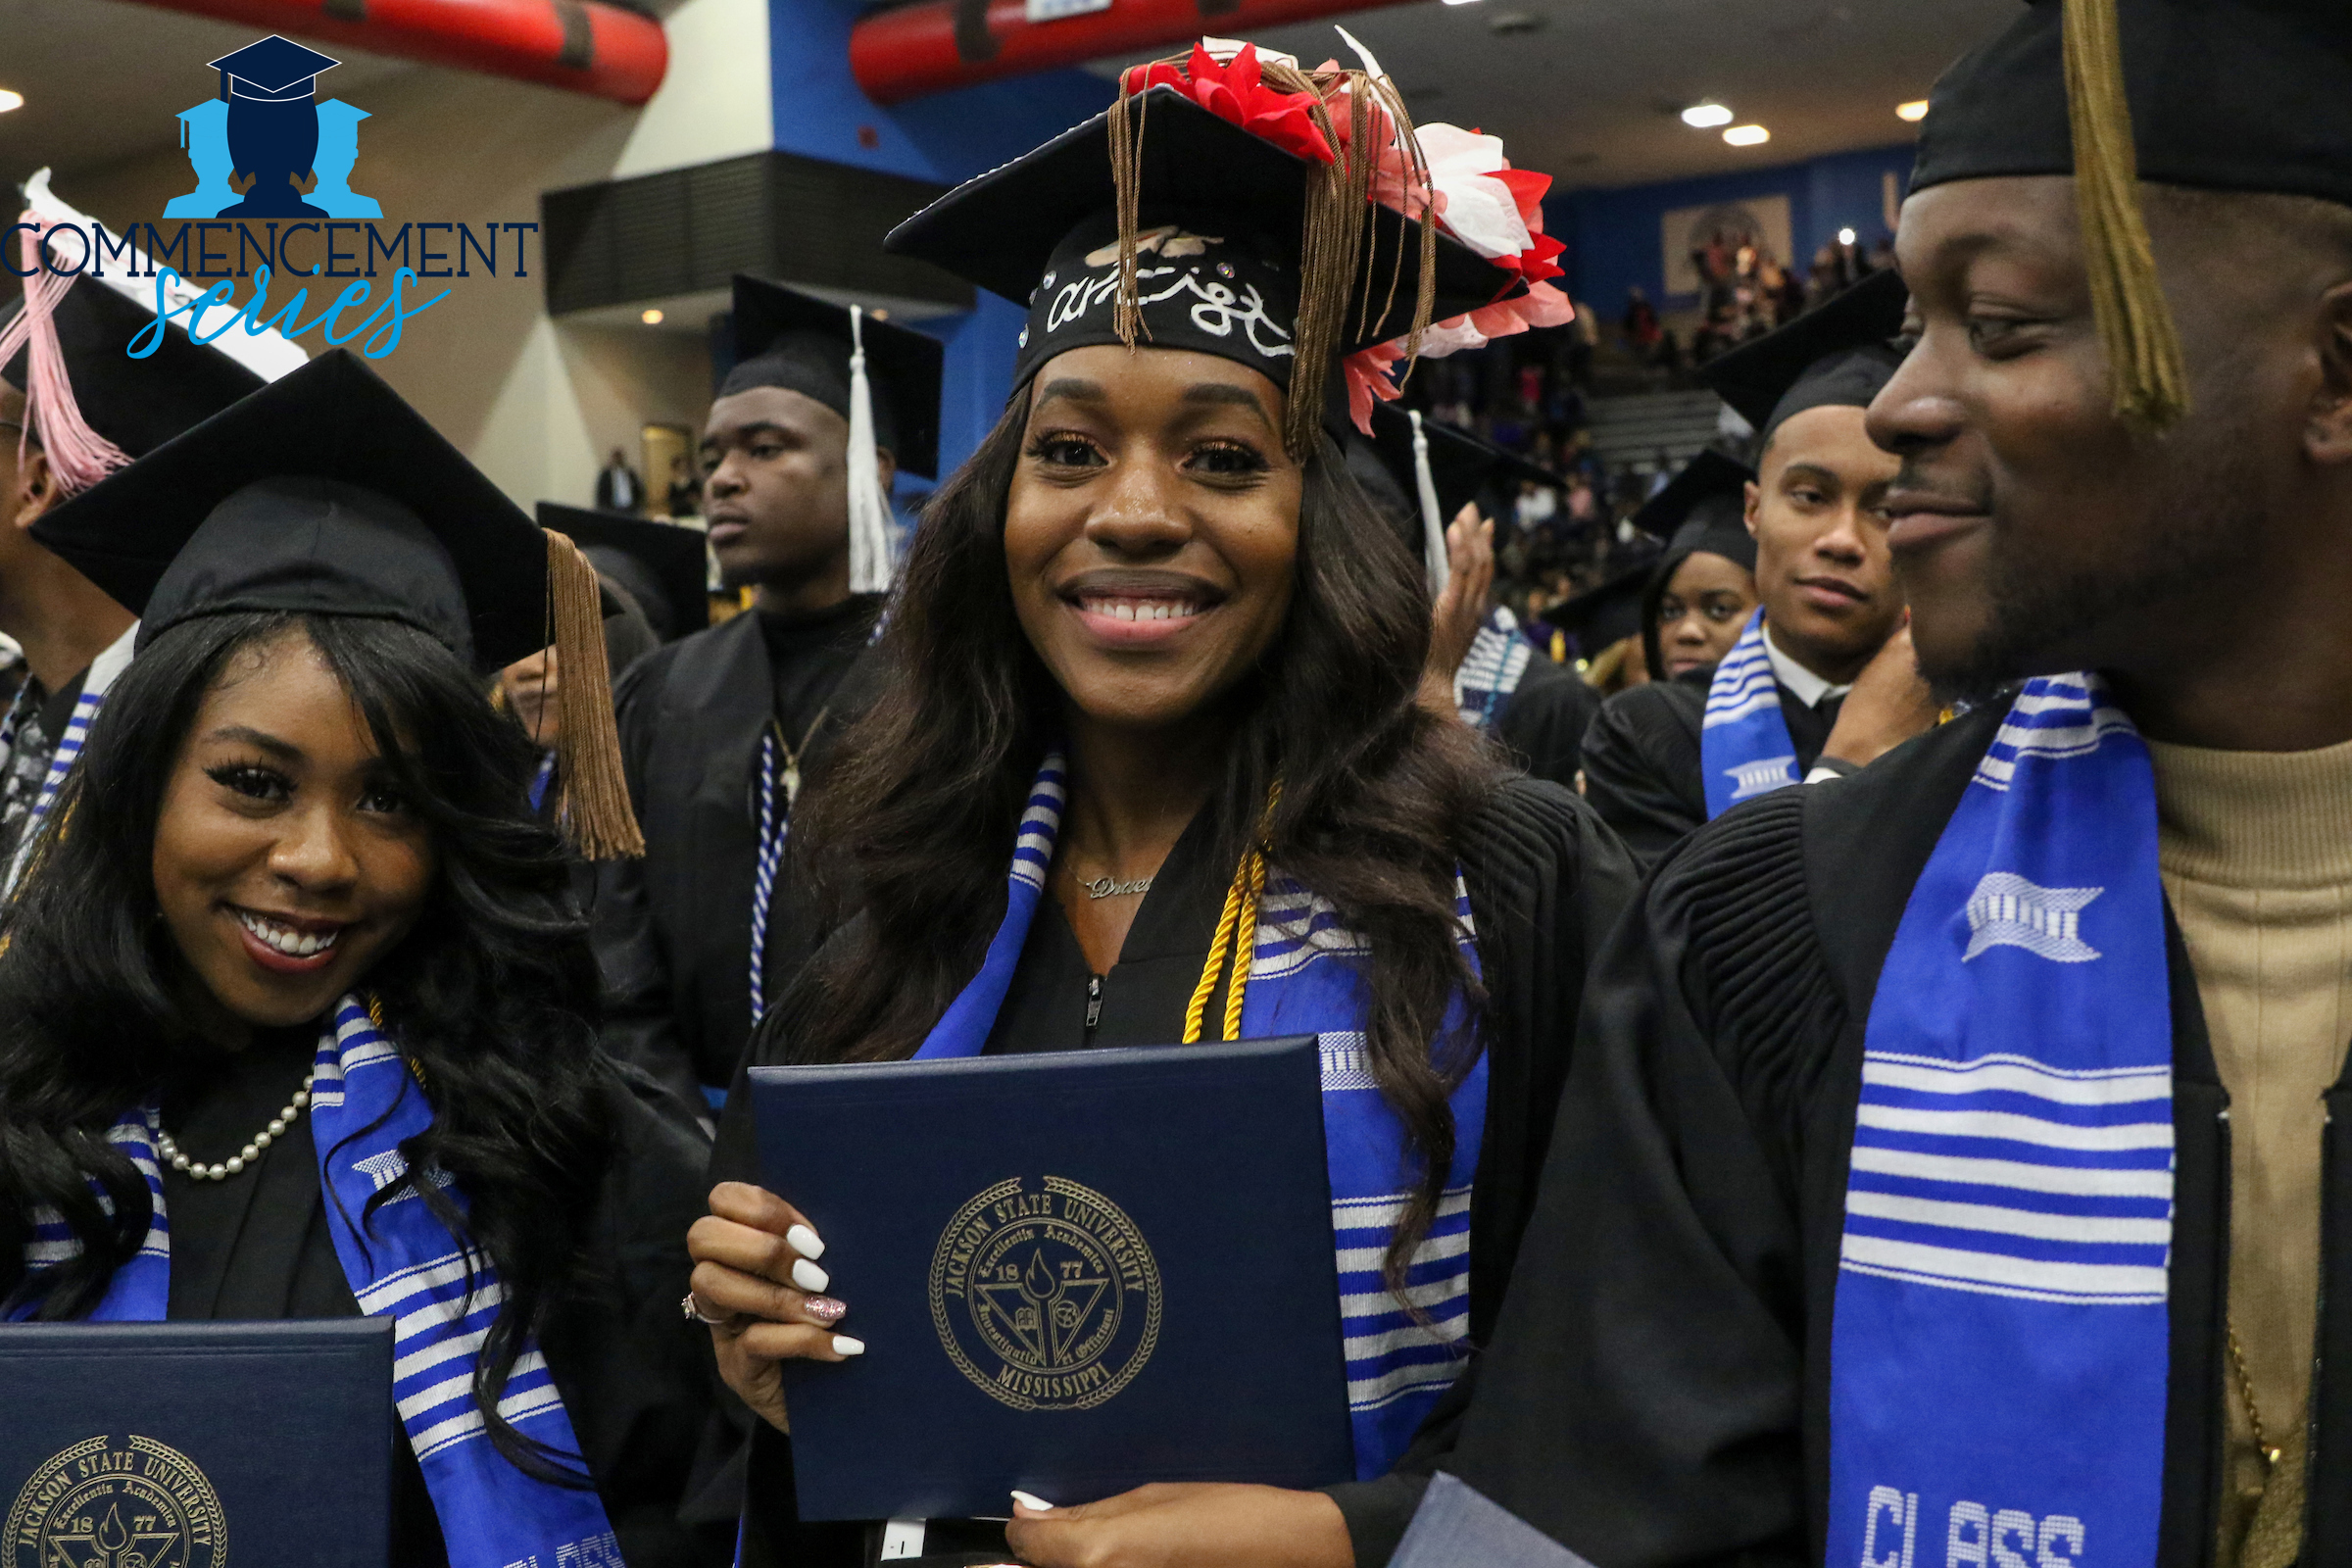 On Friday, Dec. 6, graduates were all smiles as they prepared to close one chapter and get ready for the next at Jackson State University's winter commencement ceremony. (Photo by Charles A. Smith)